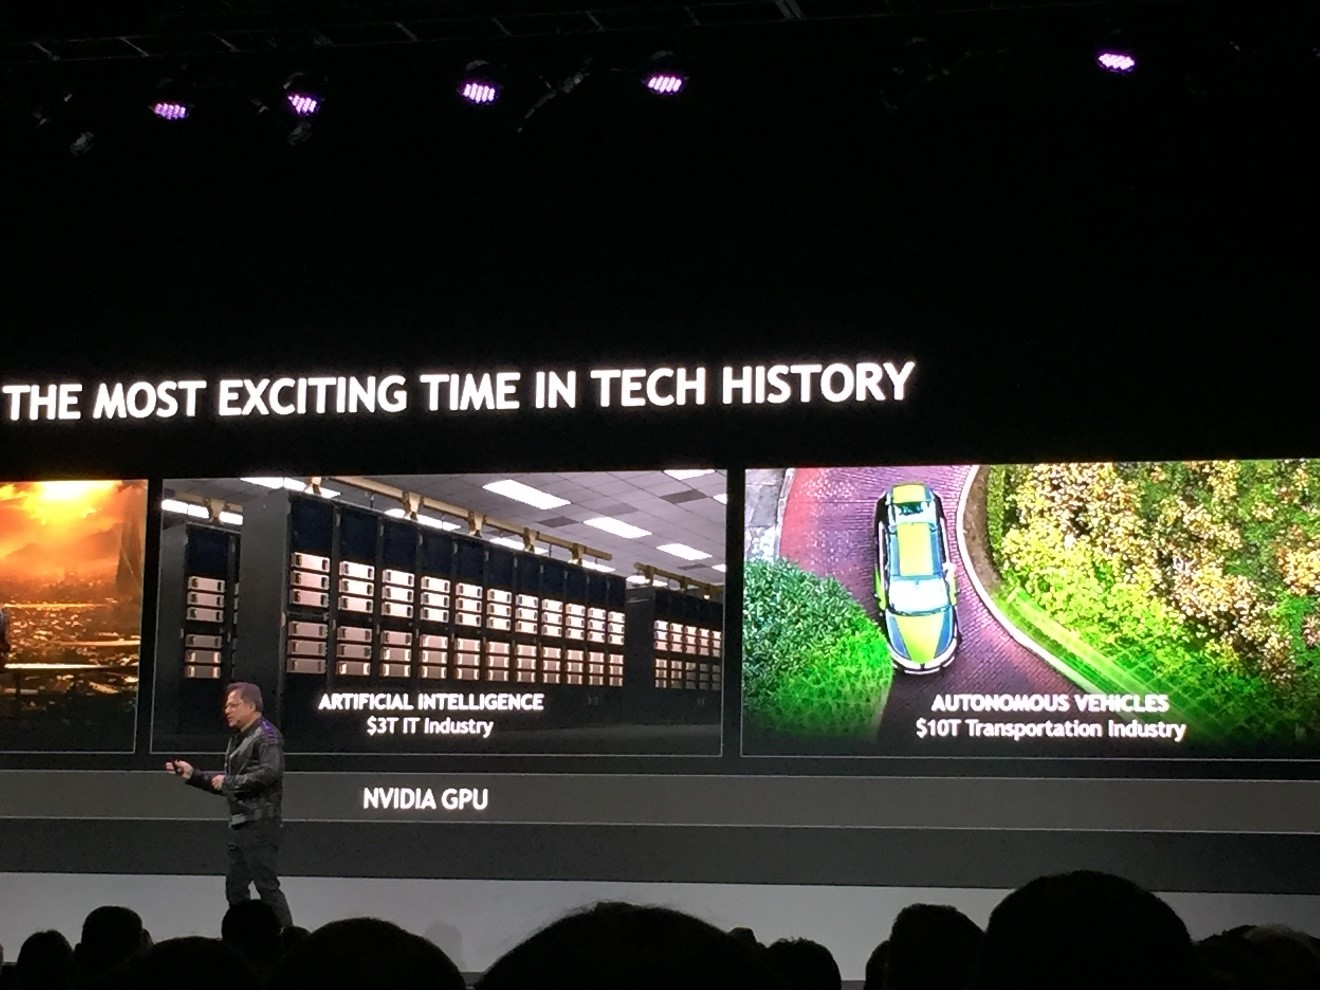 In a keynote address, NVIDIA CEO Jensen Huang unveiled a slew of news and initiatives. He talked about training AI in virtual space as well as the certification of NVIDIA's drive stack to ISO 26262 standard, with full functional safety.